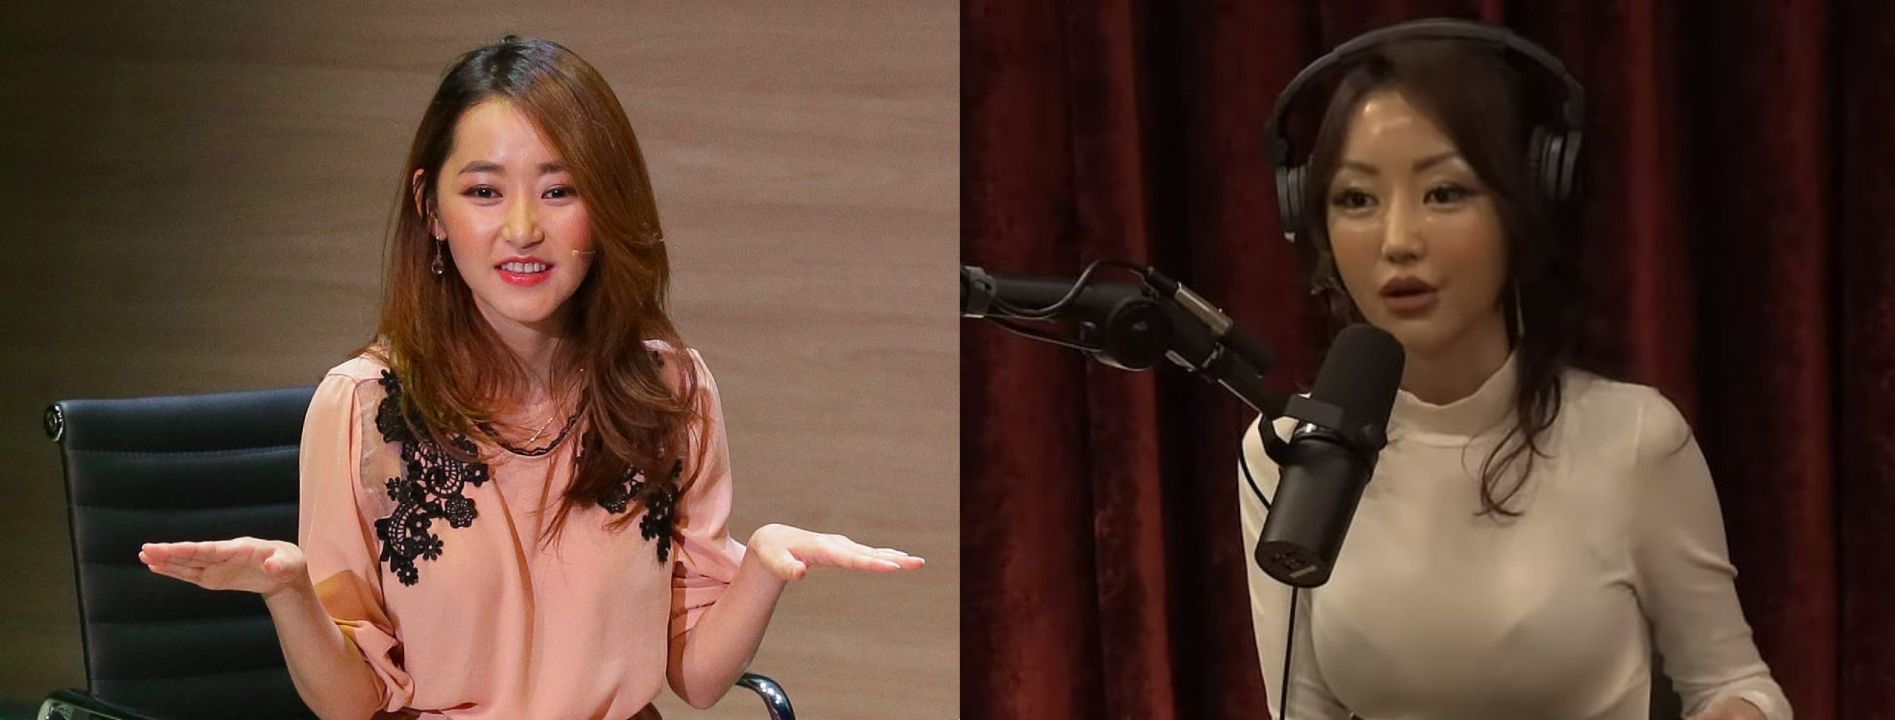 Yeonmi Park before and after alleged breast implants plastic surgery.